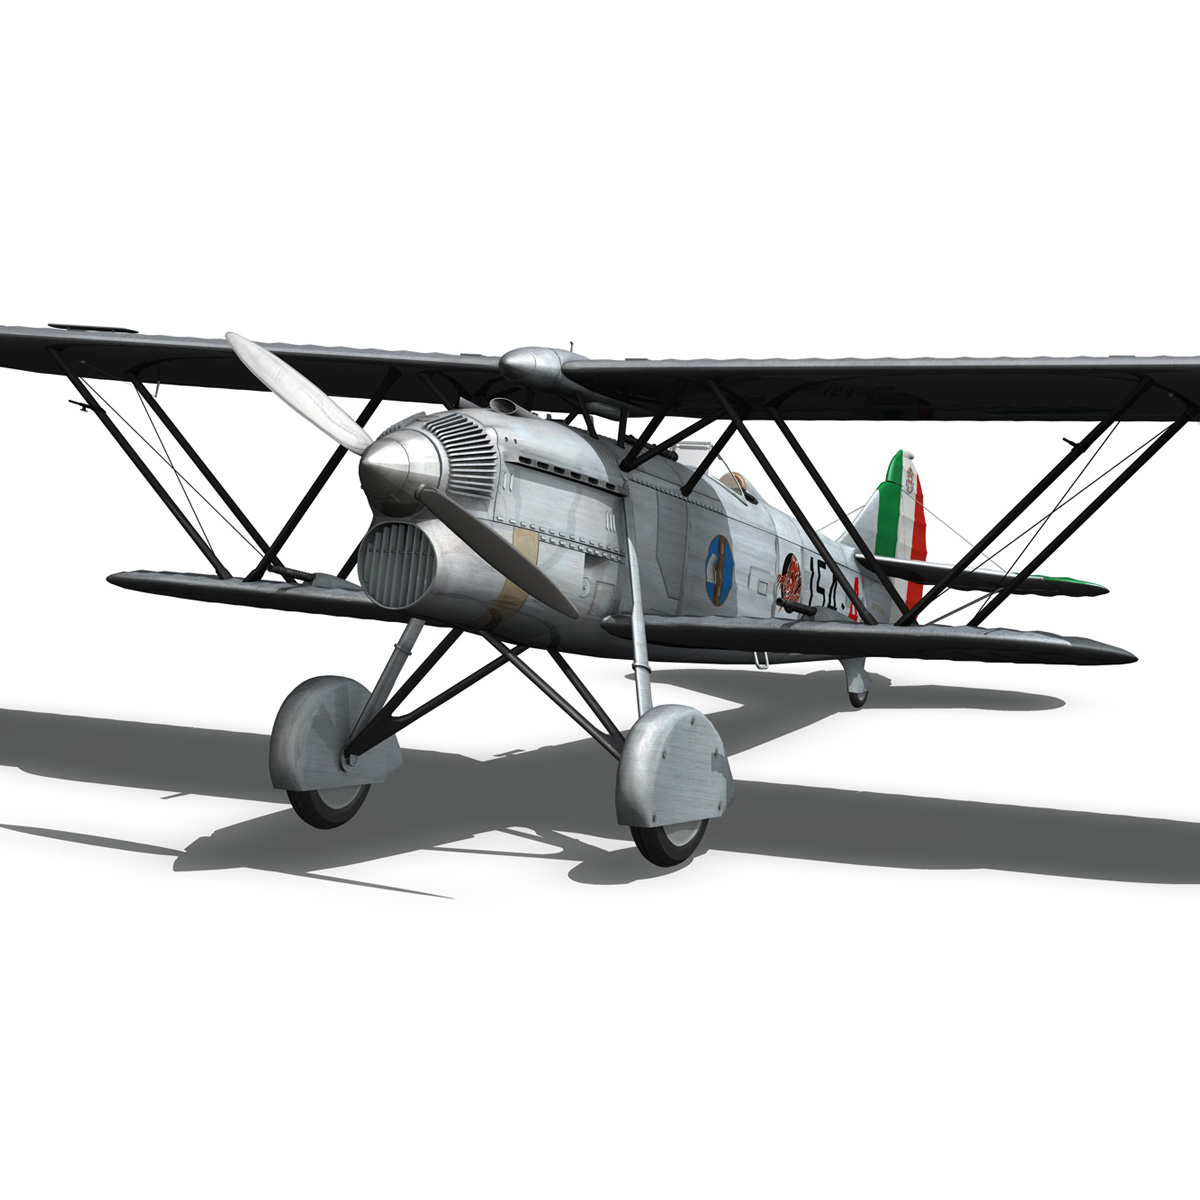 fiat cr.32 – italy airforce – 154 squadriglia 3d model fbx c4d lwo obj 268137